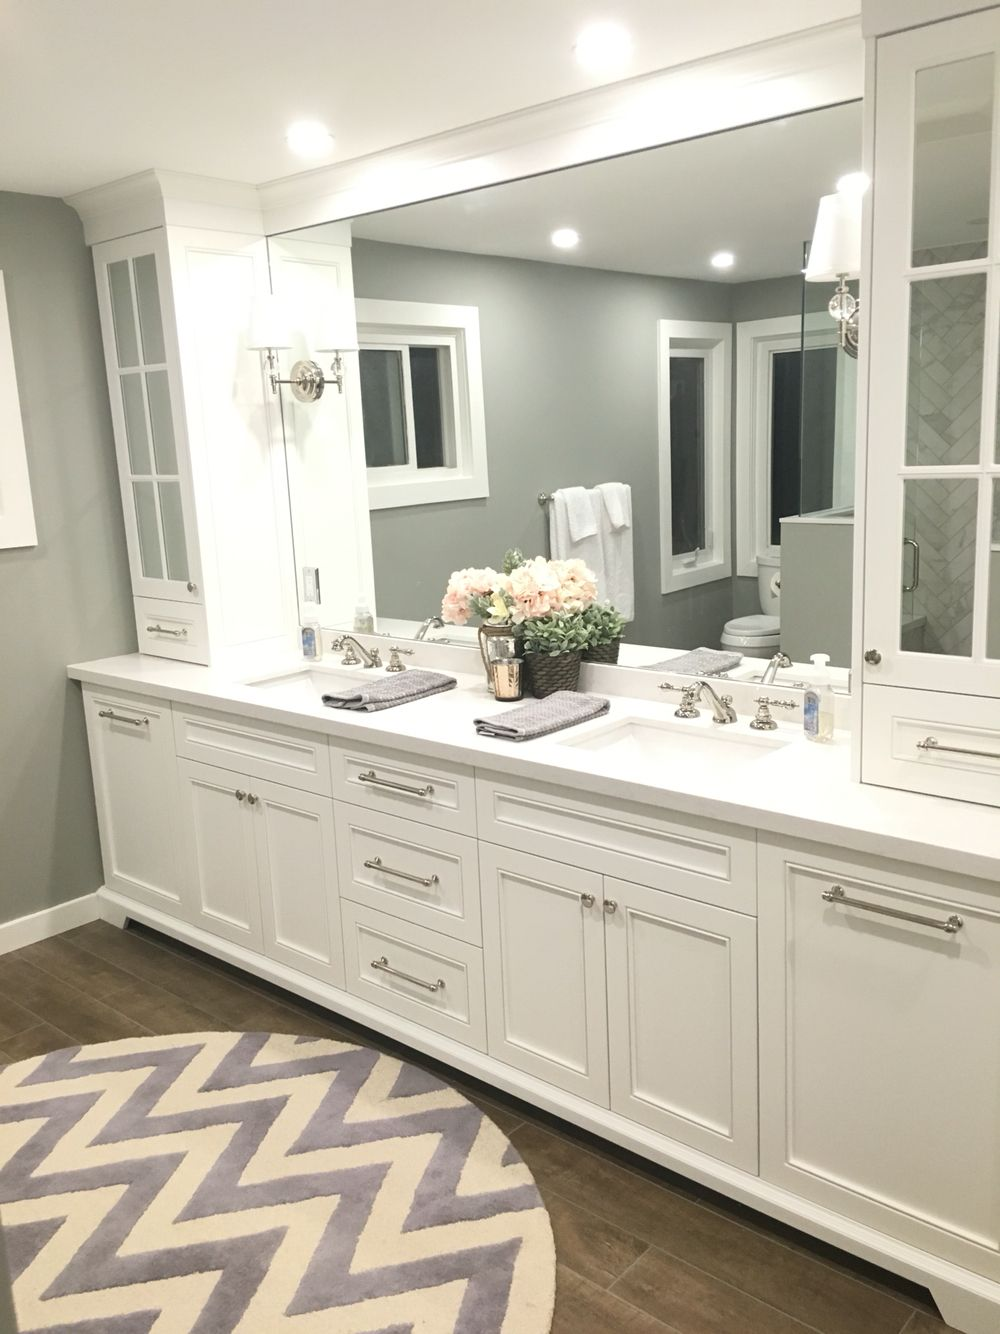 Bathroom Mirror Ideas Double Vanity master ensuite with custom vanity. | shower panels | pinterest